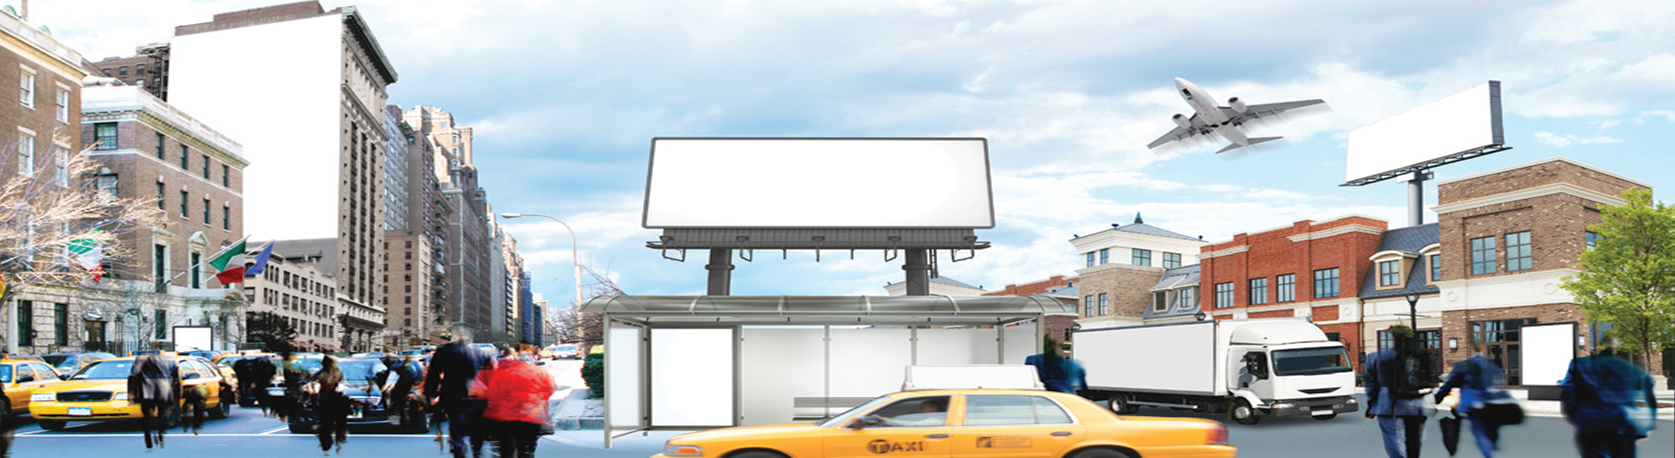 Billboards and Alternative Outdoor Advertising